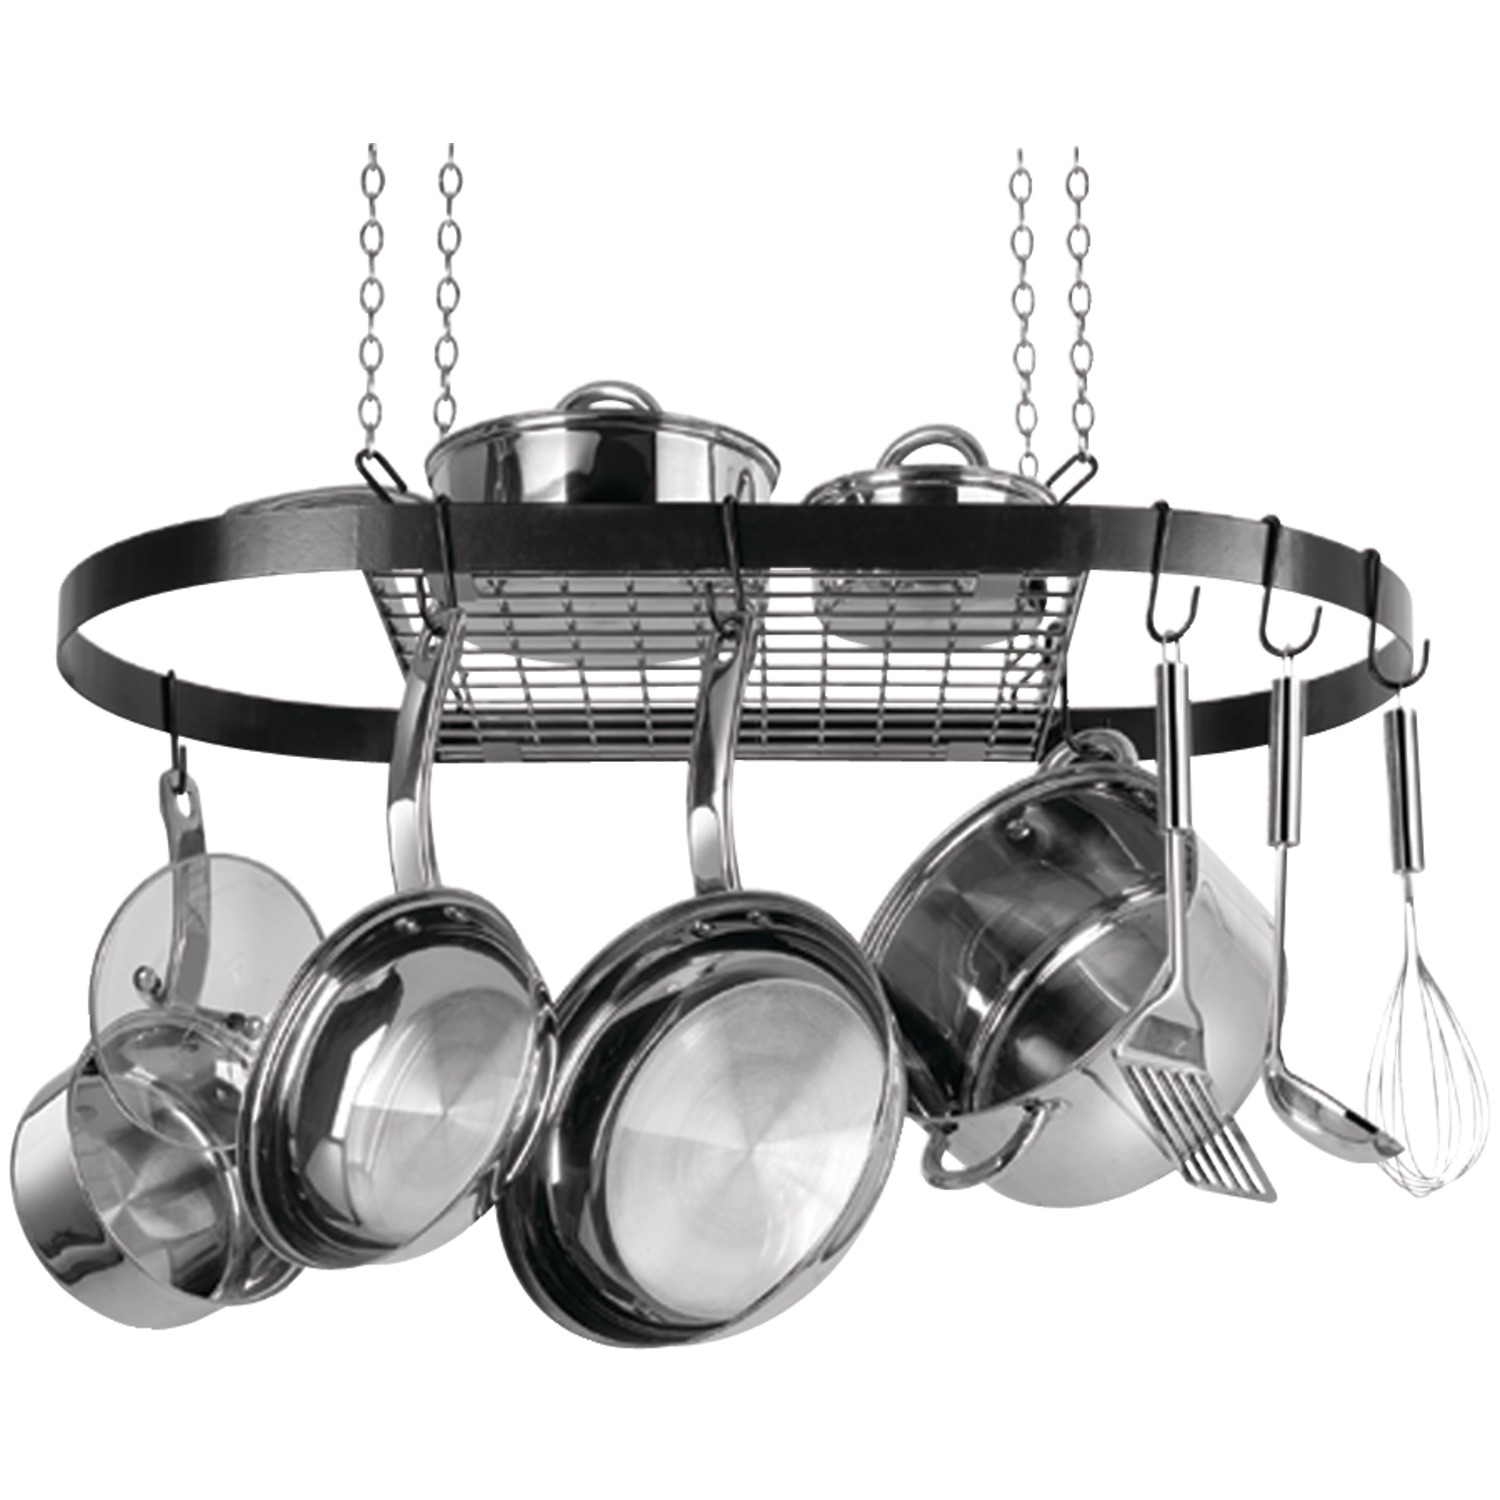 Range Kleen CW6000R Oval Hanging Pot Rack (black Enamel)